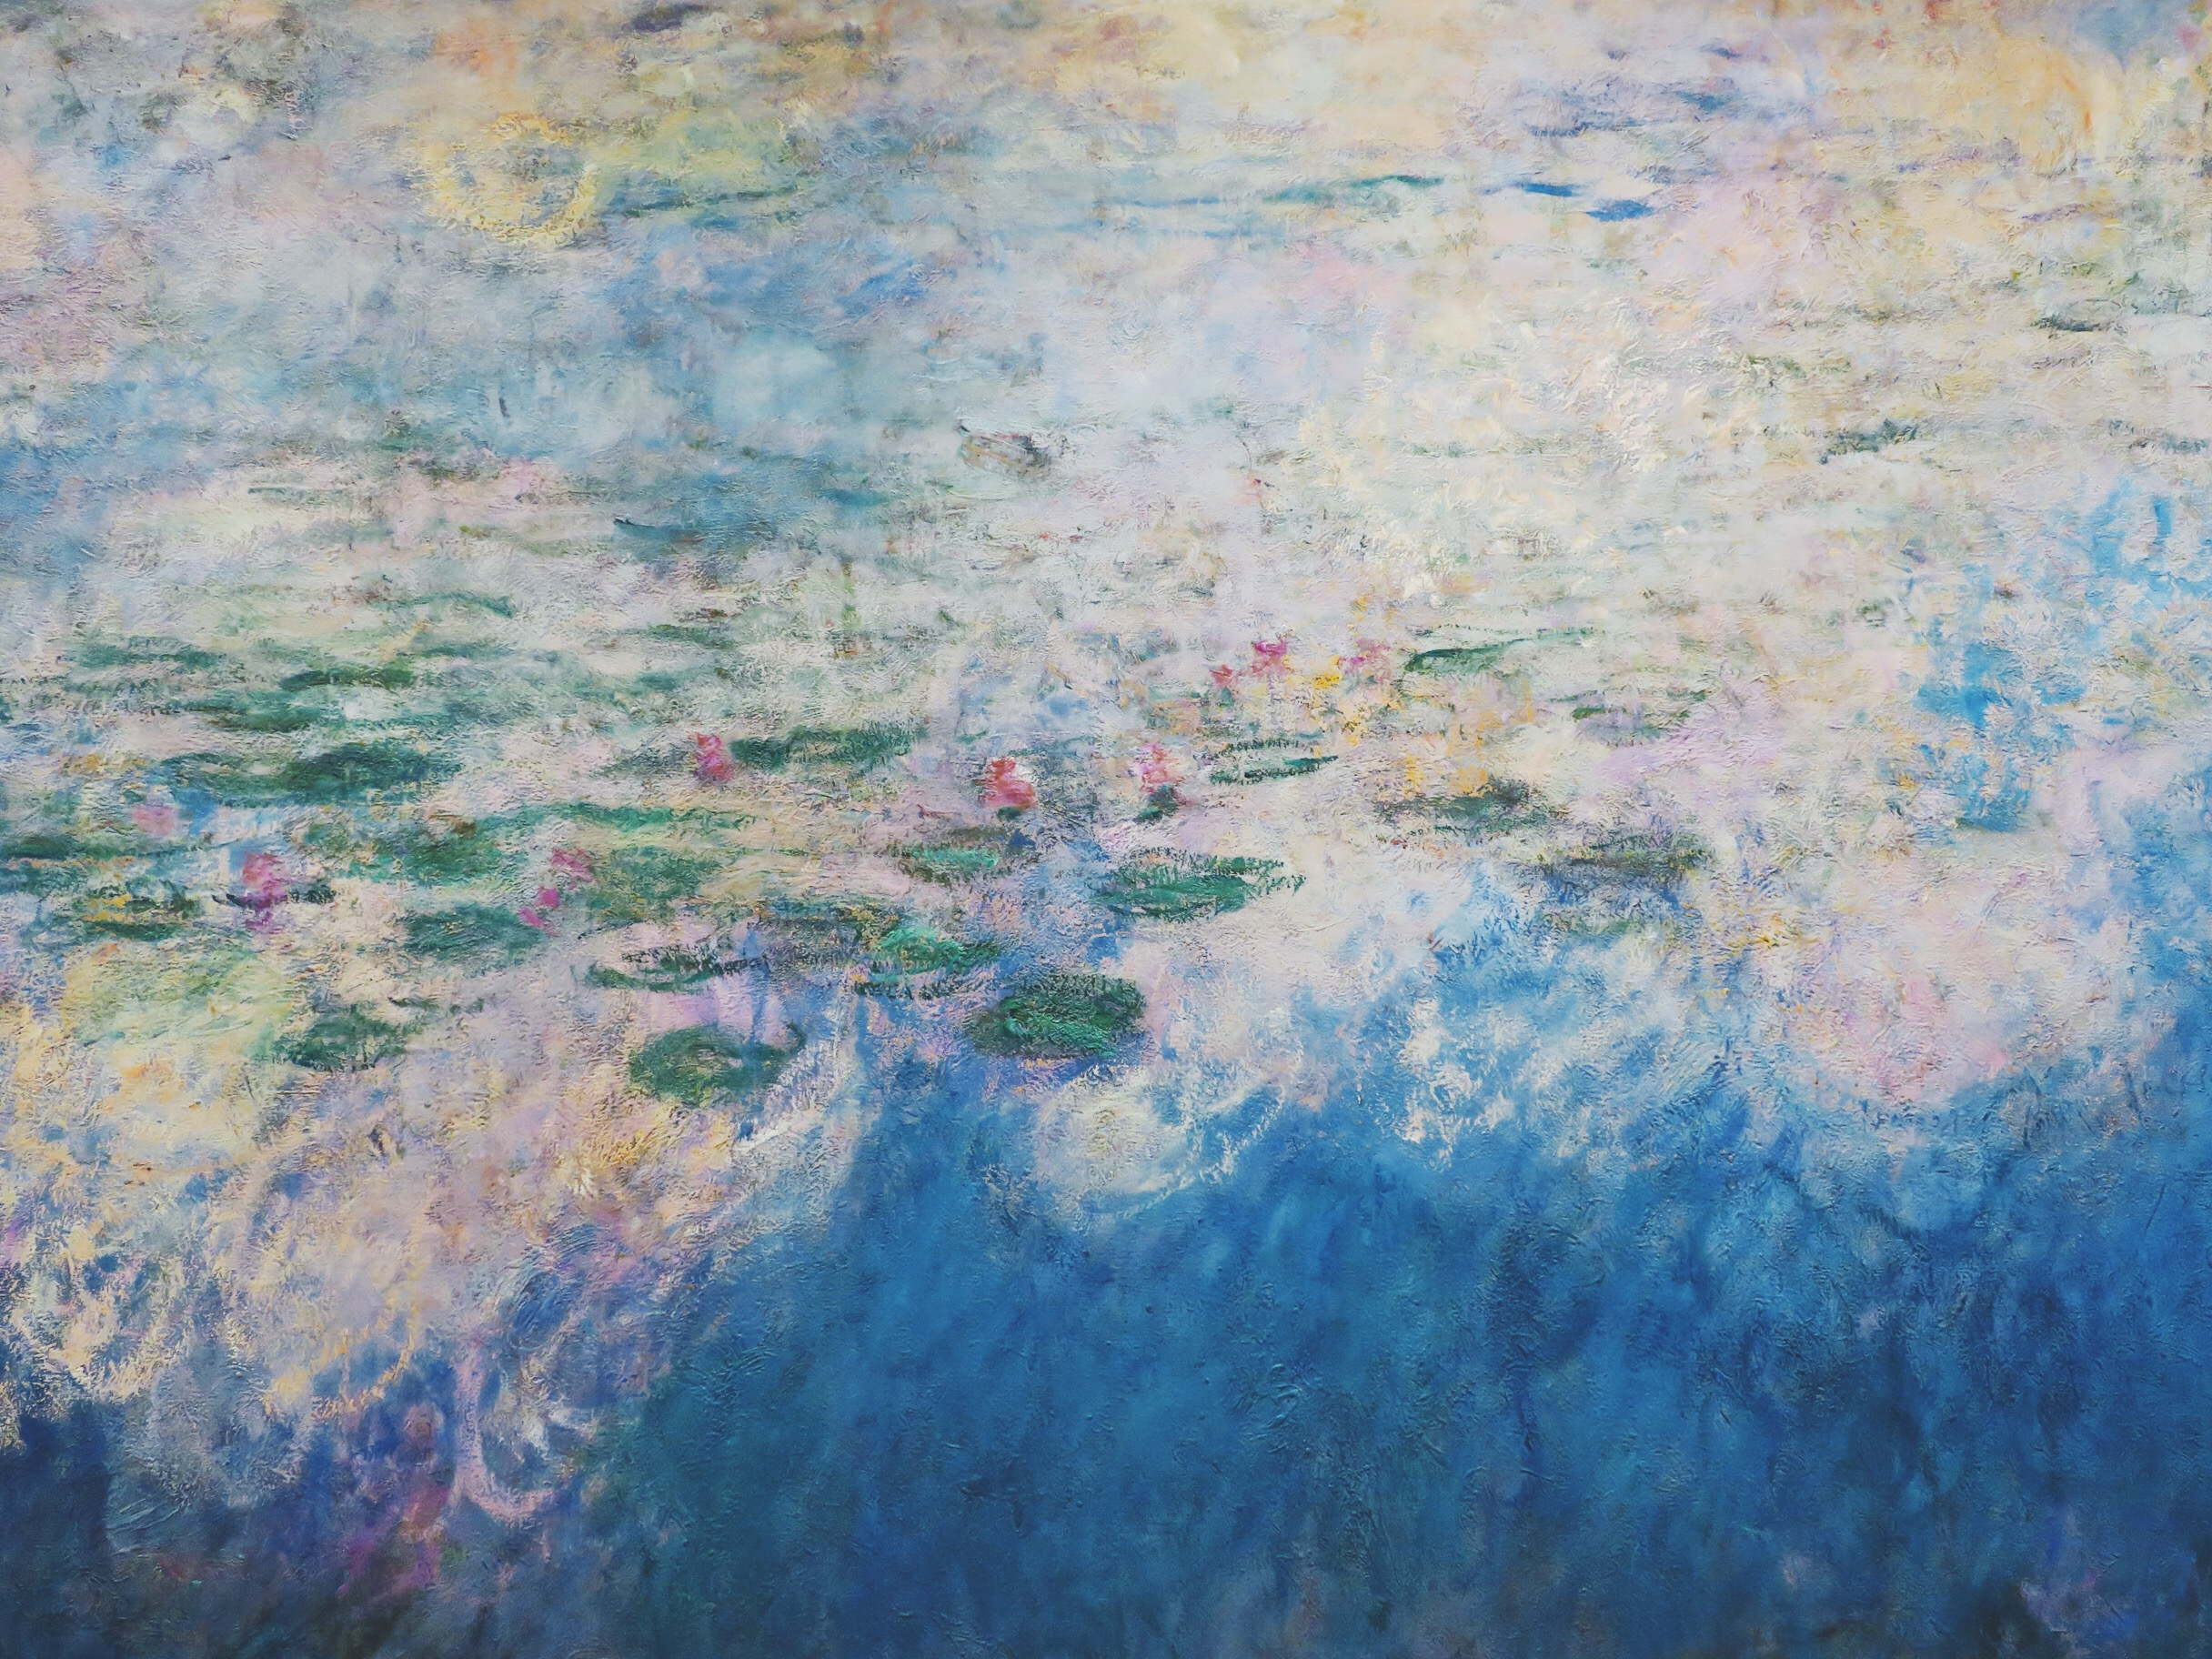 Claude Monet's 'Water Lilies' at the MoMA